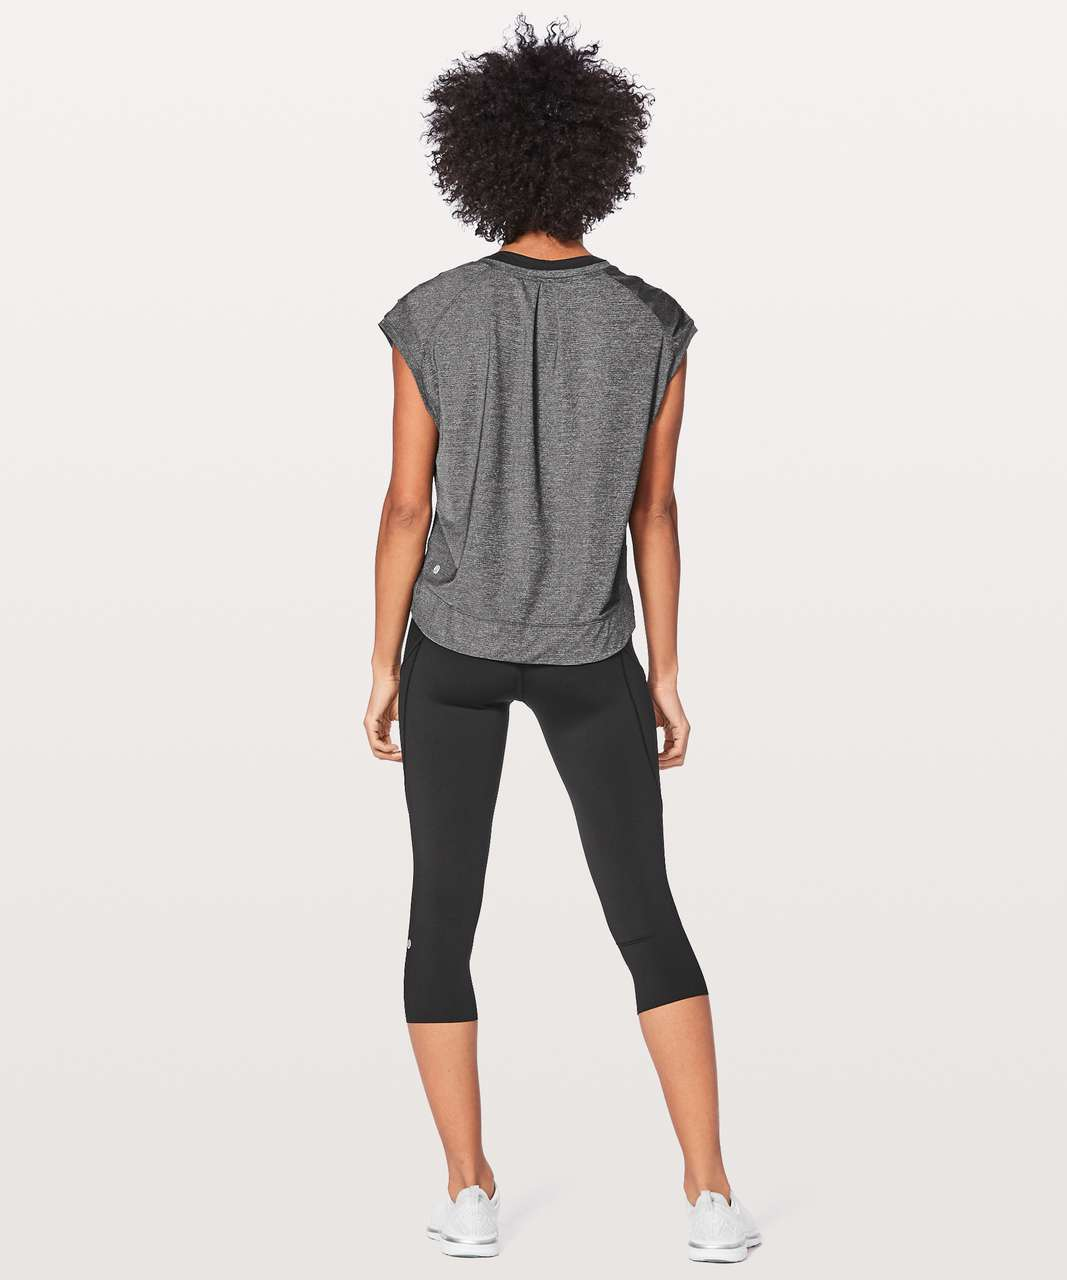 Lululemon Gait Keeper Short Sleeve - Heathered Black